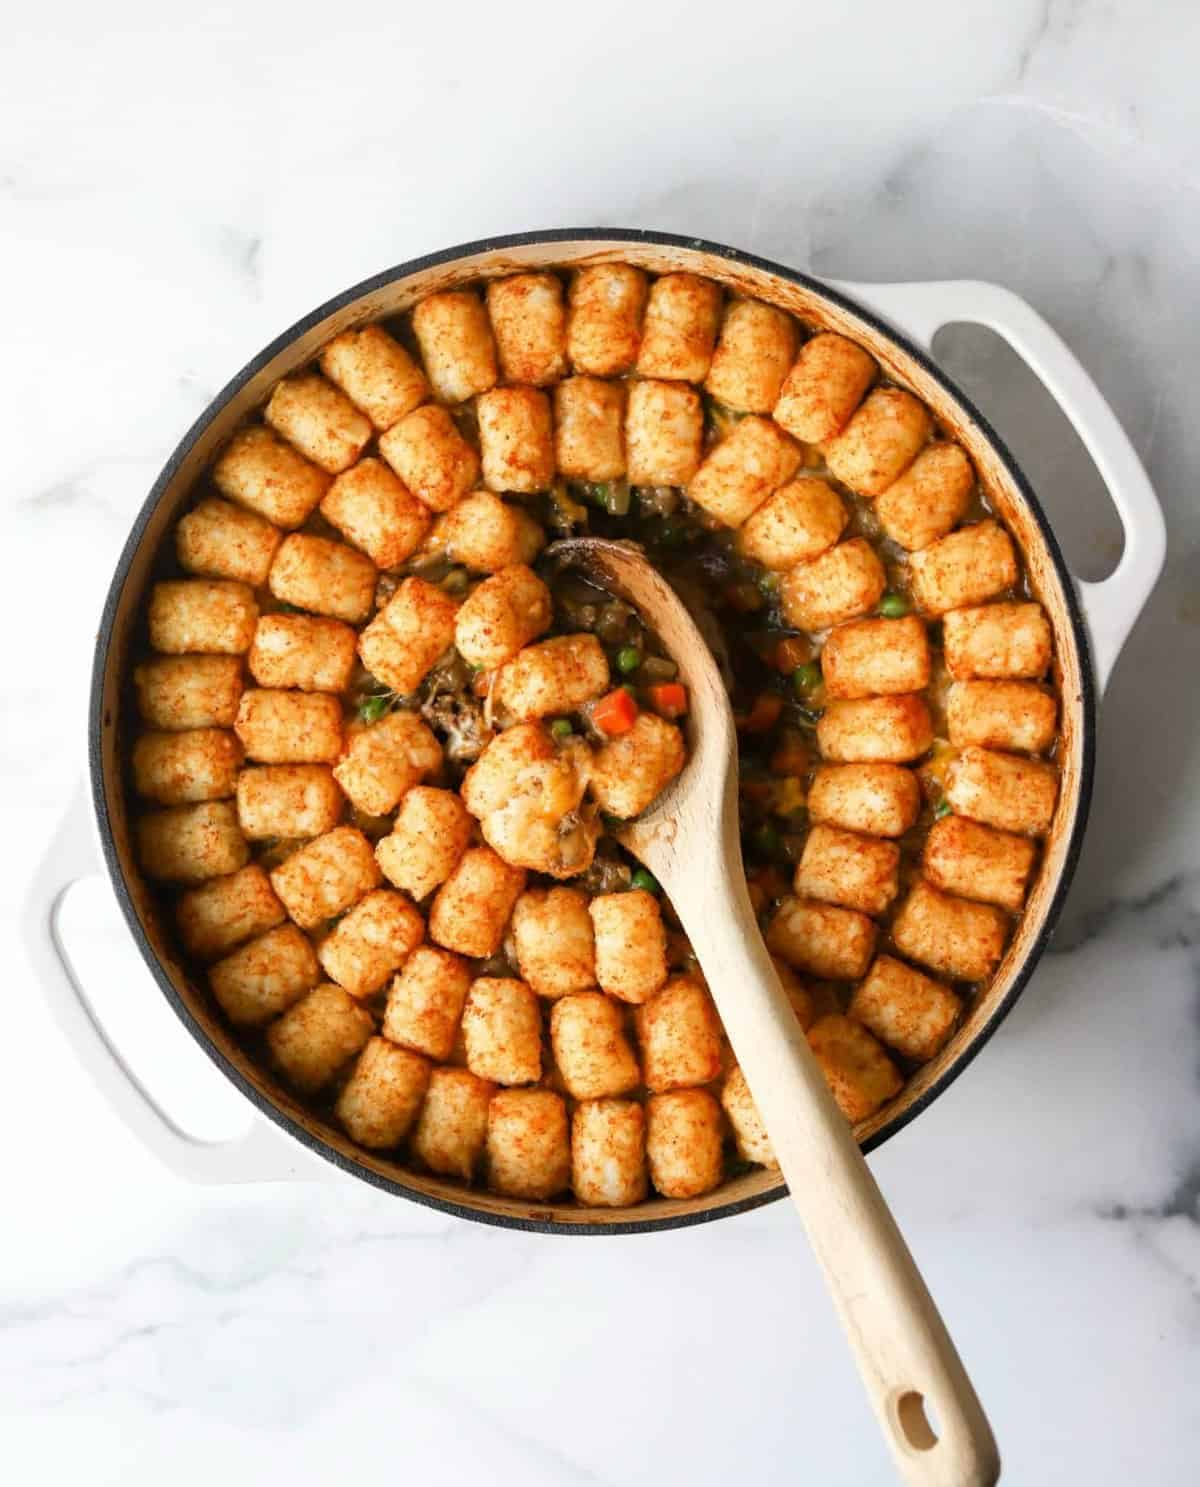 wooden spoon scooping a helping of tater tot casserole